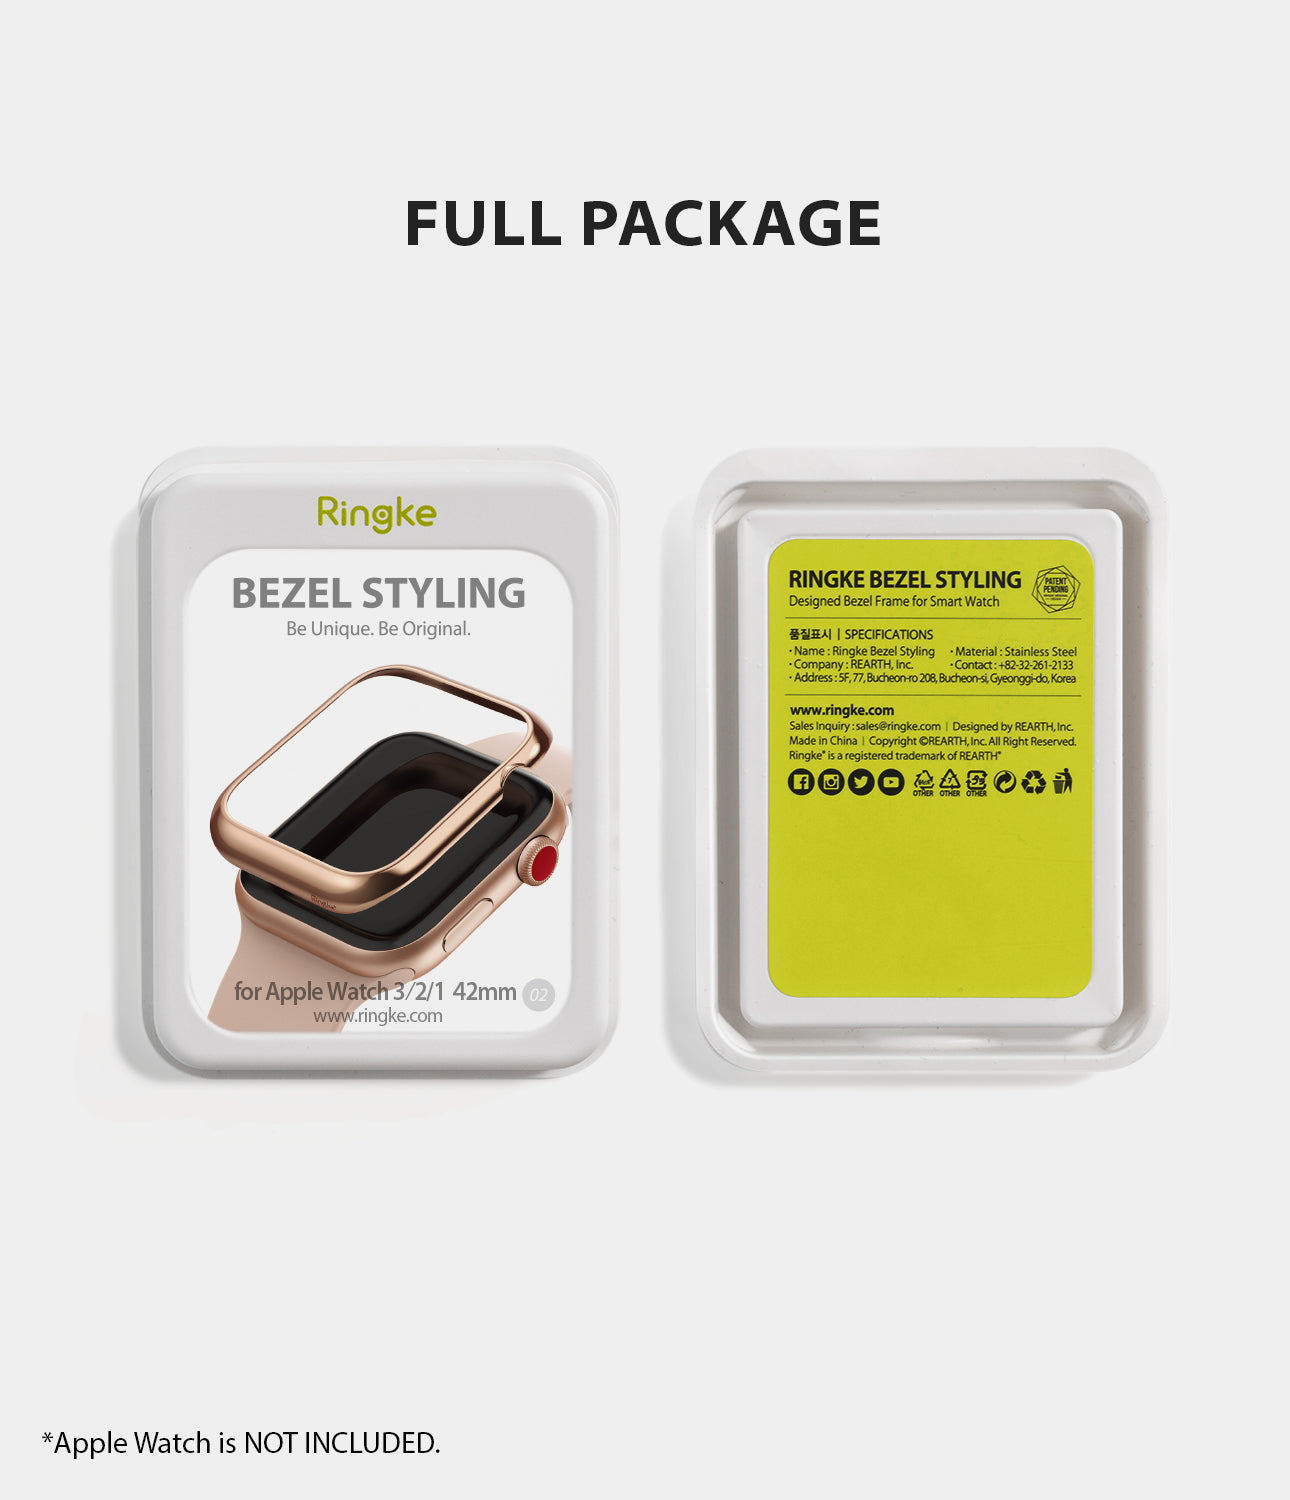 apple watch 3 2 1 42mm case ringke bezel styling stainless steel frame cover 42-02 full package